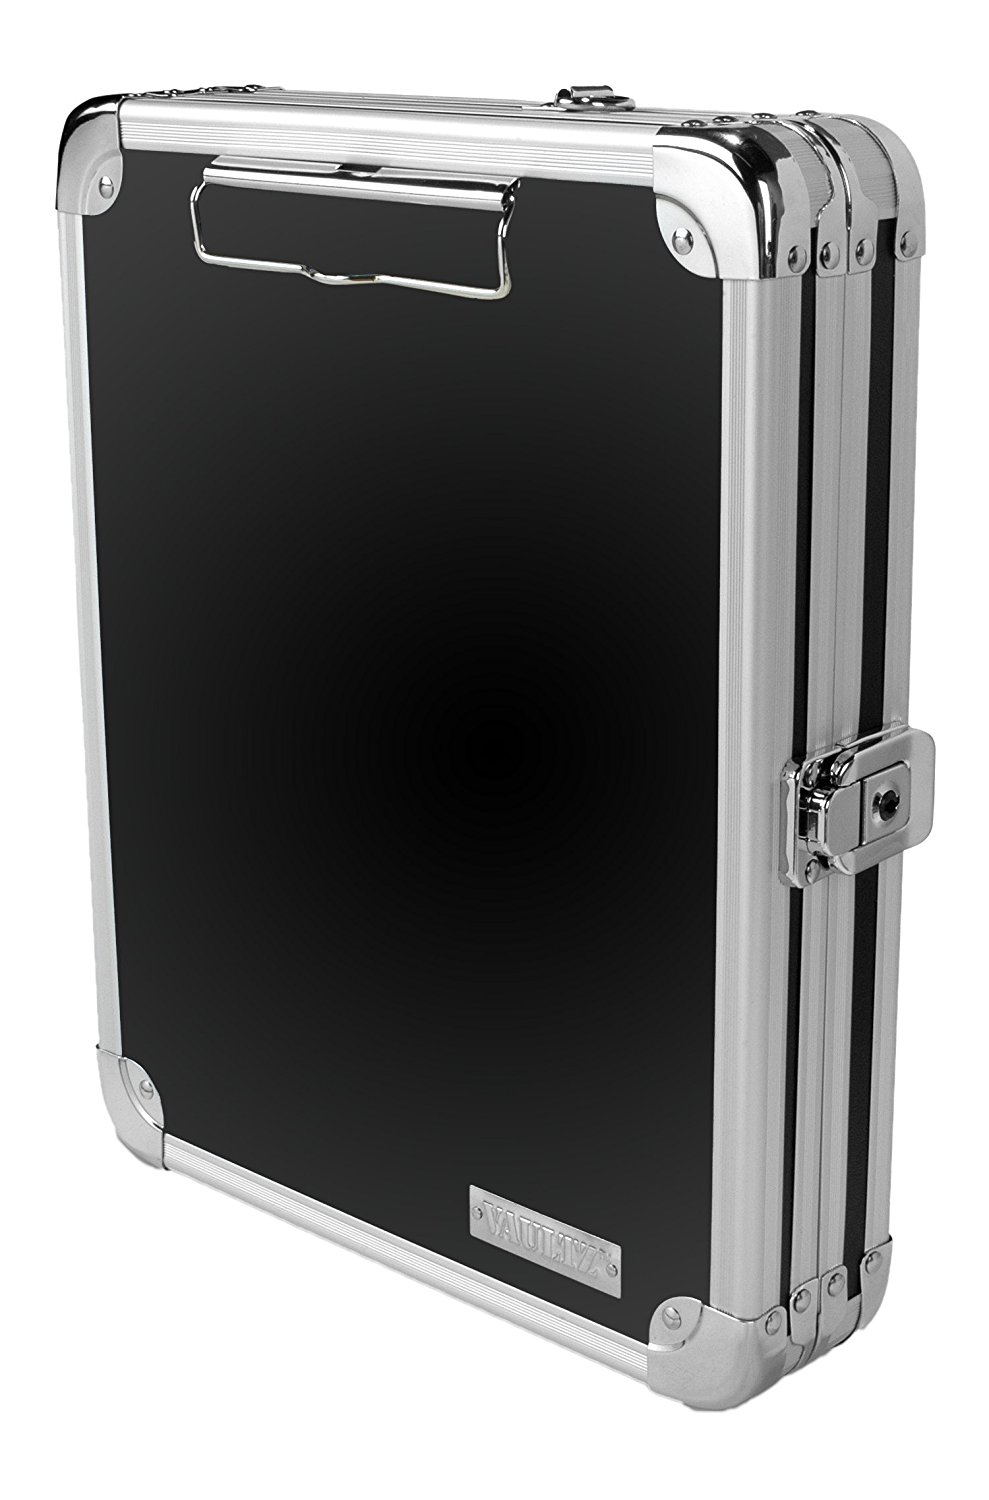 locking mini storage clipboard 5 x 8 inches key lock black with chrome accents vz00150 functional interior features a pen loop and mesh pocket